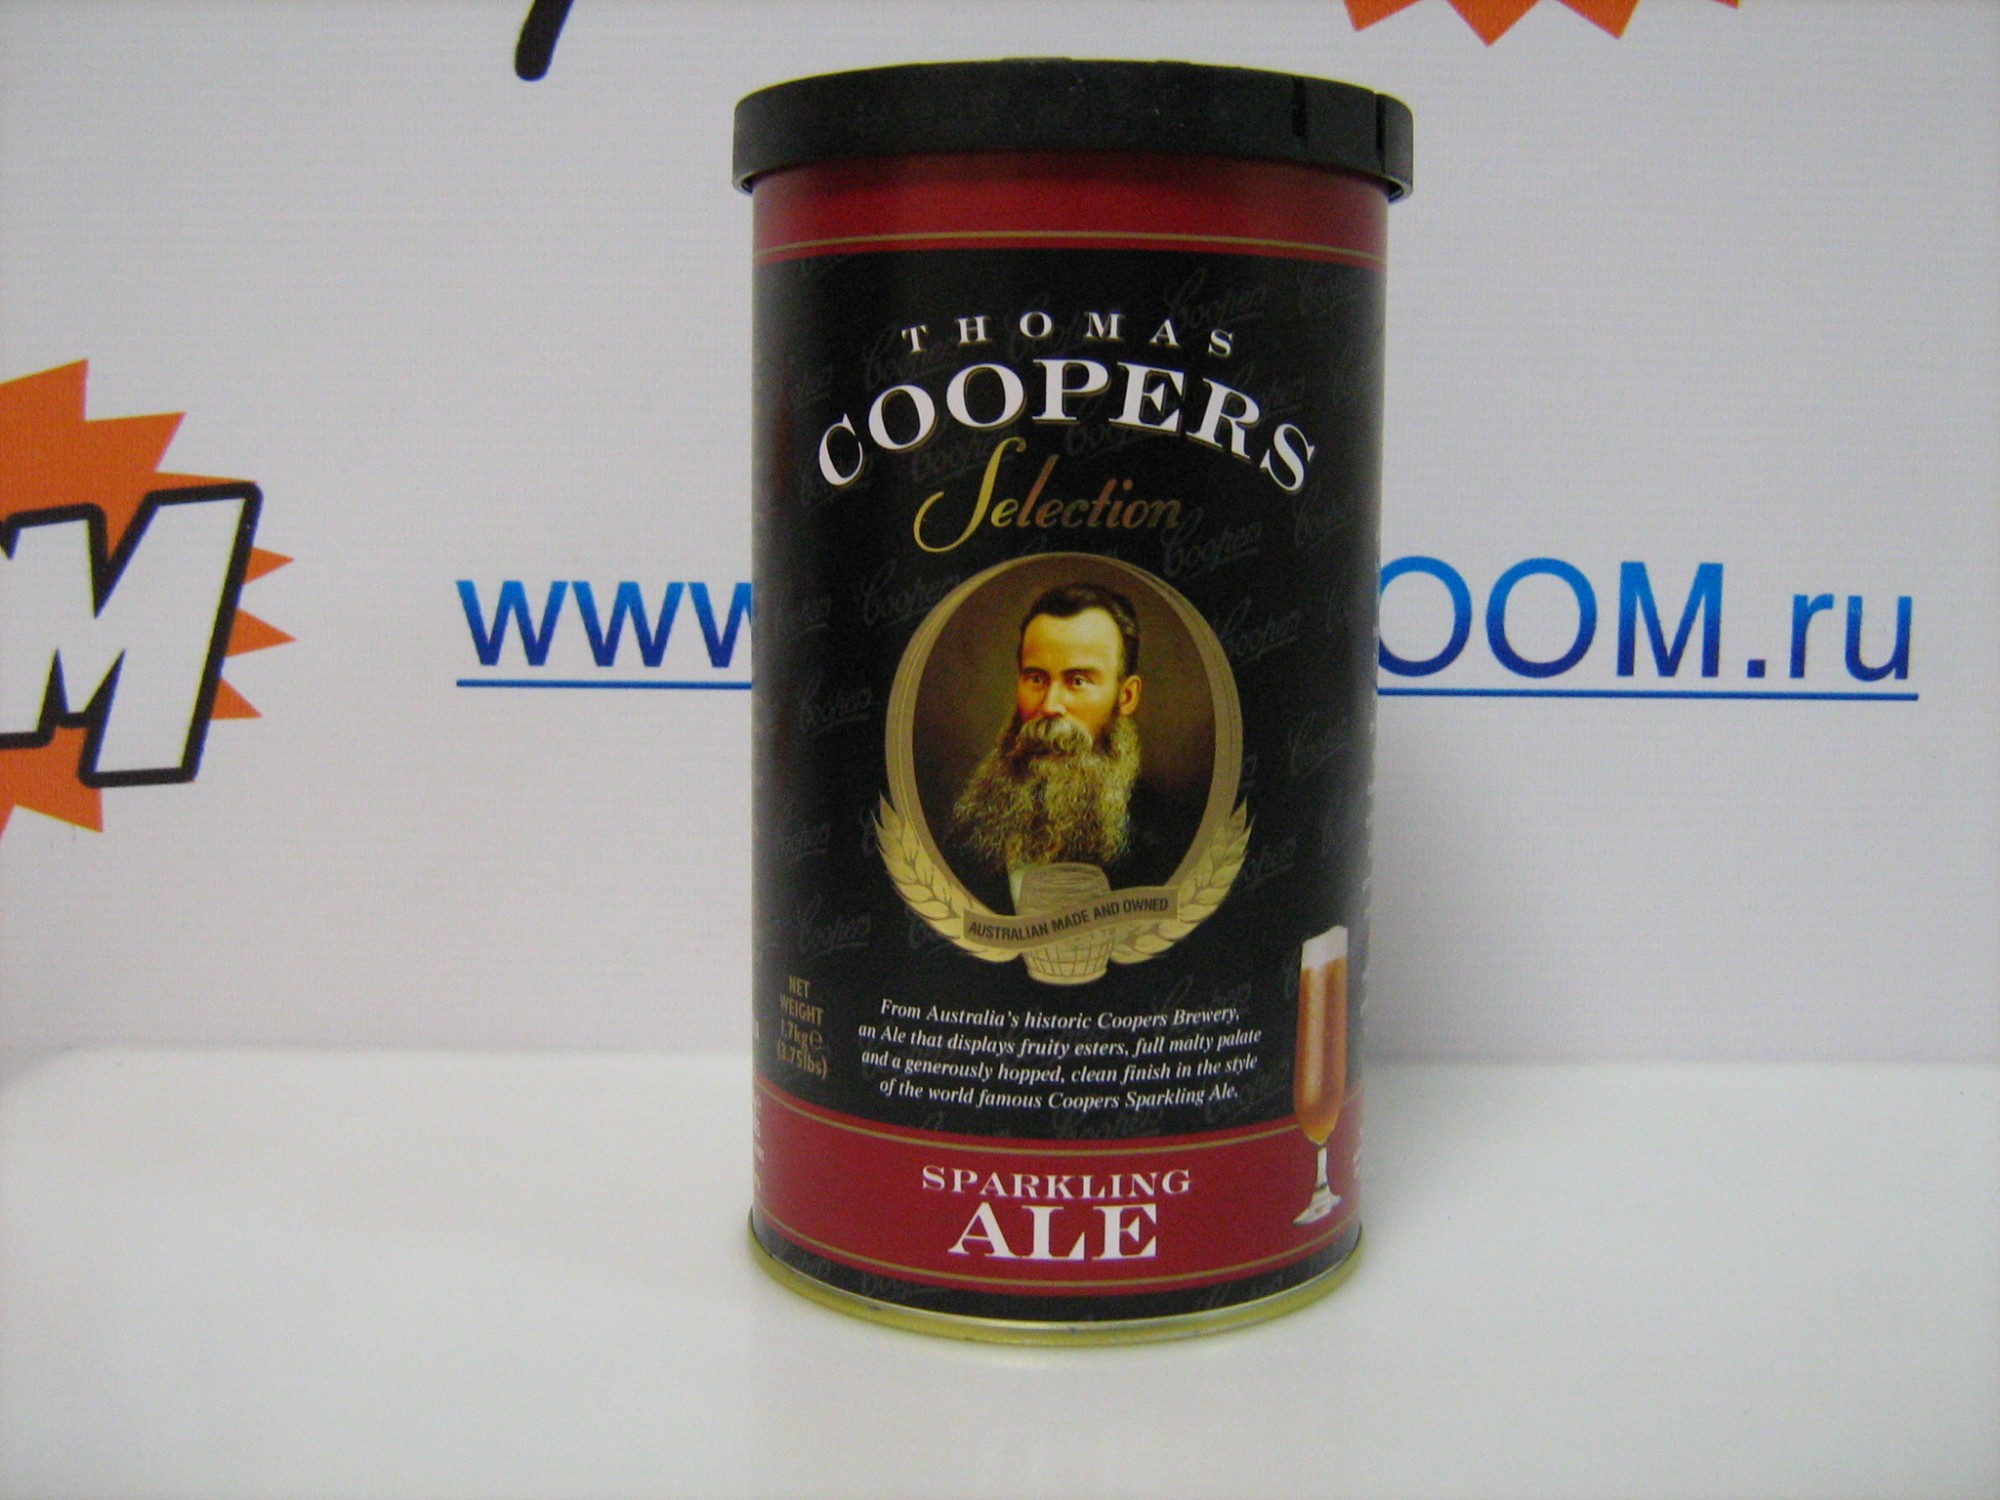 Thomas Coopers Spankling Ale